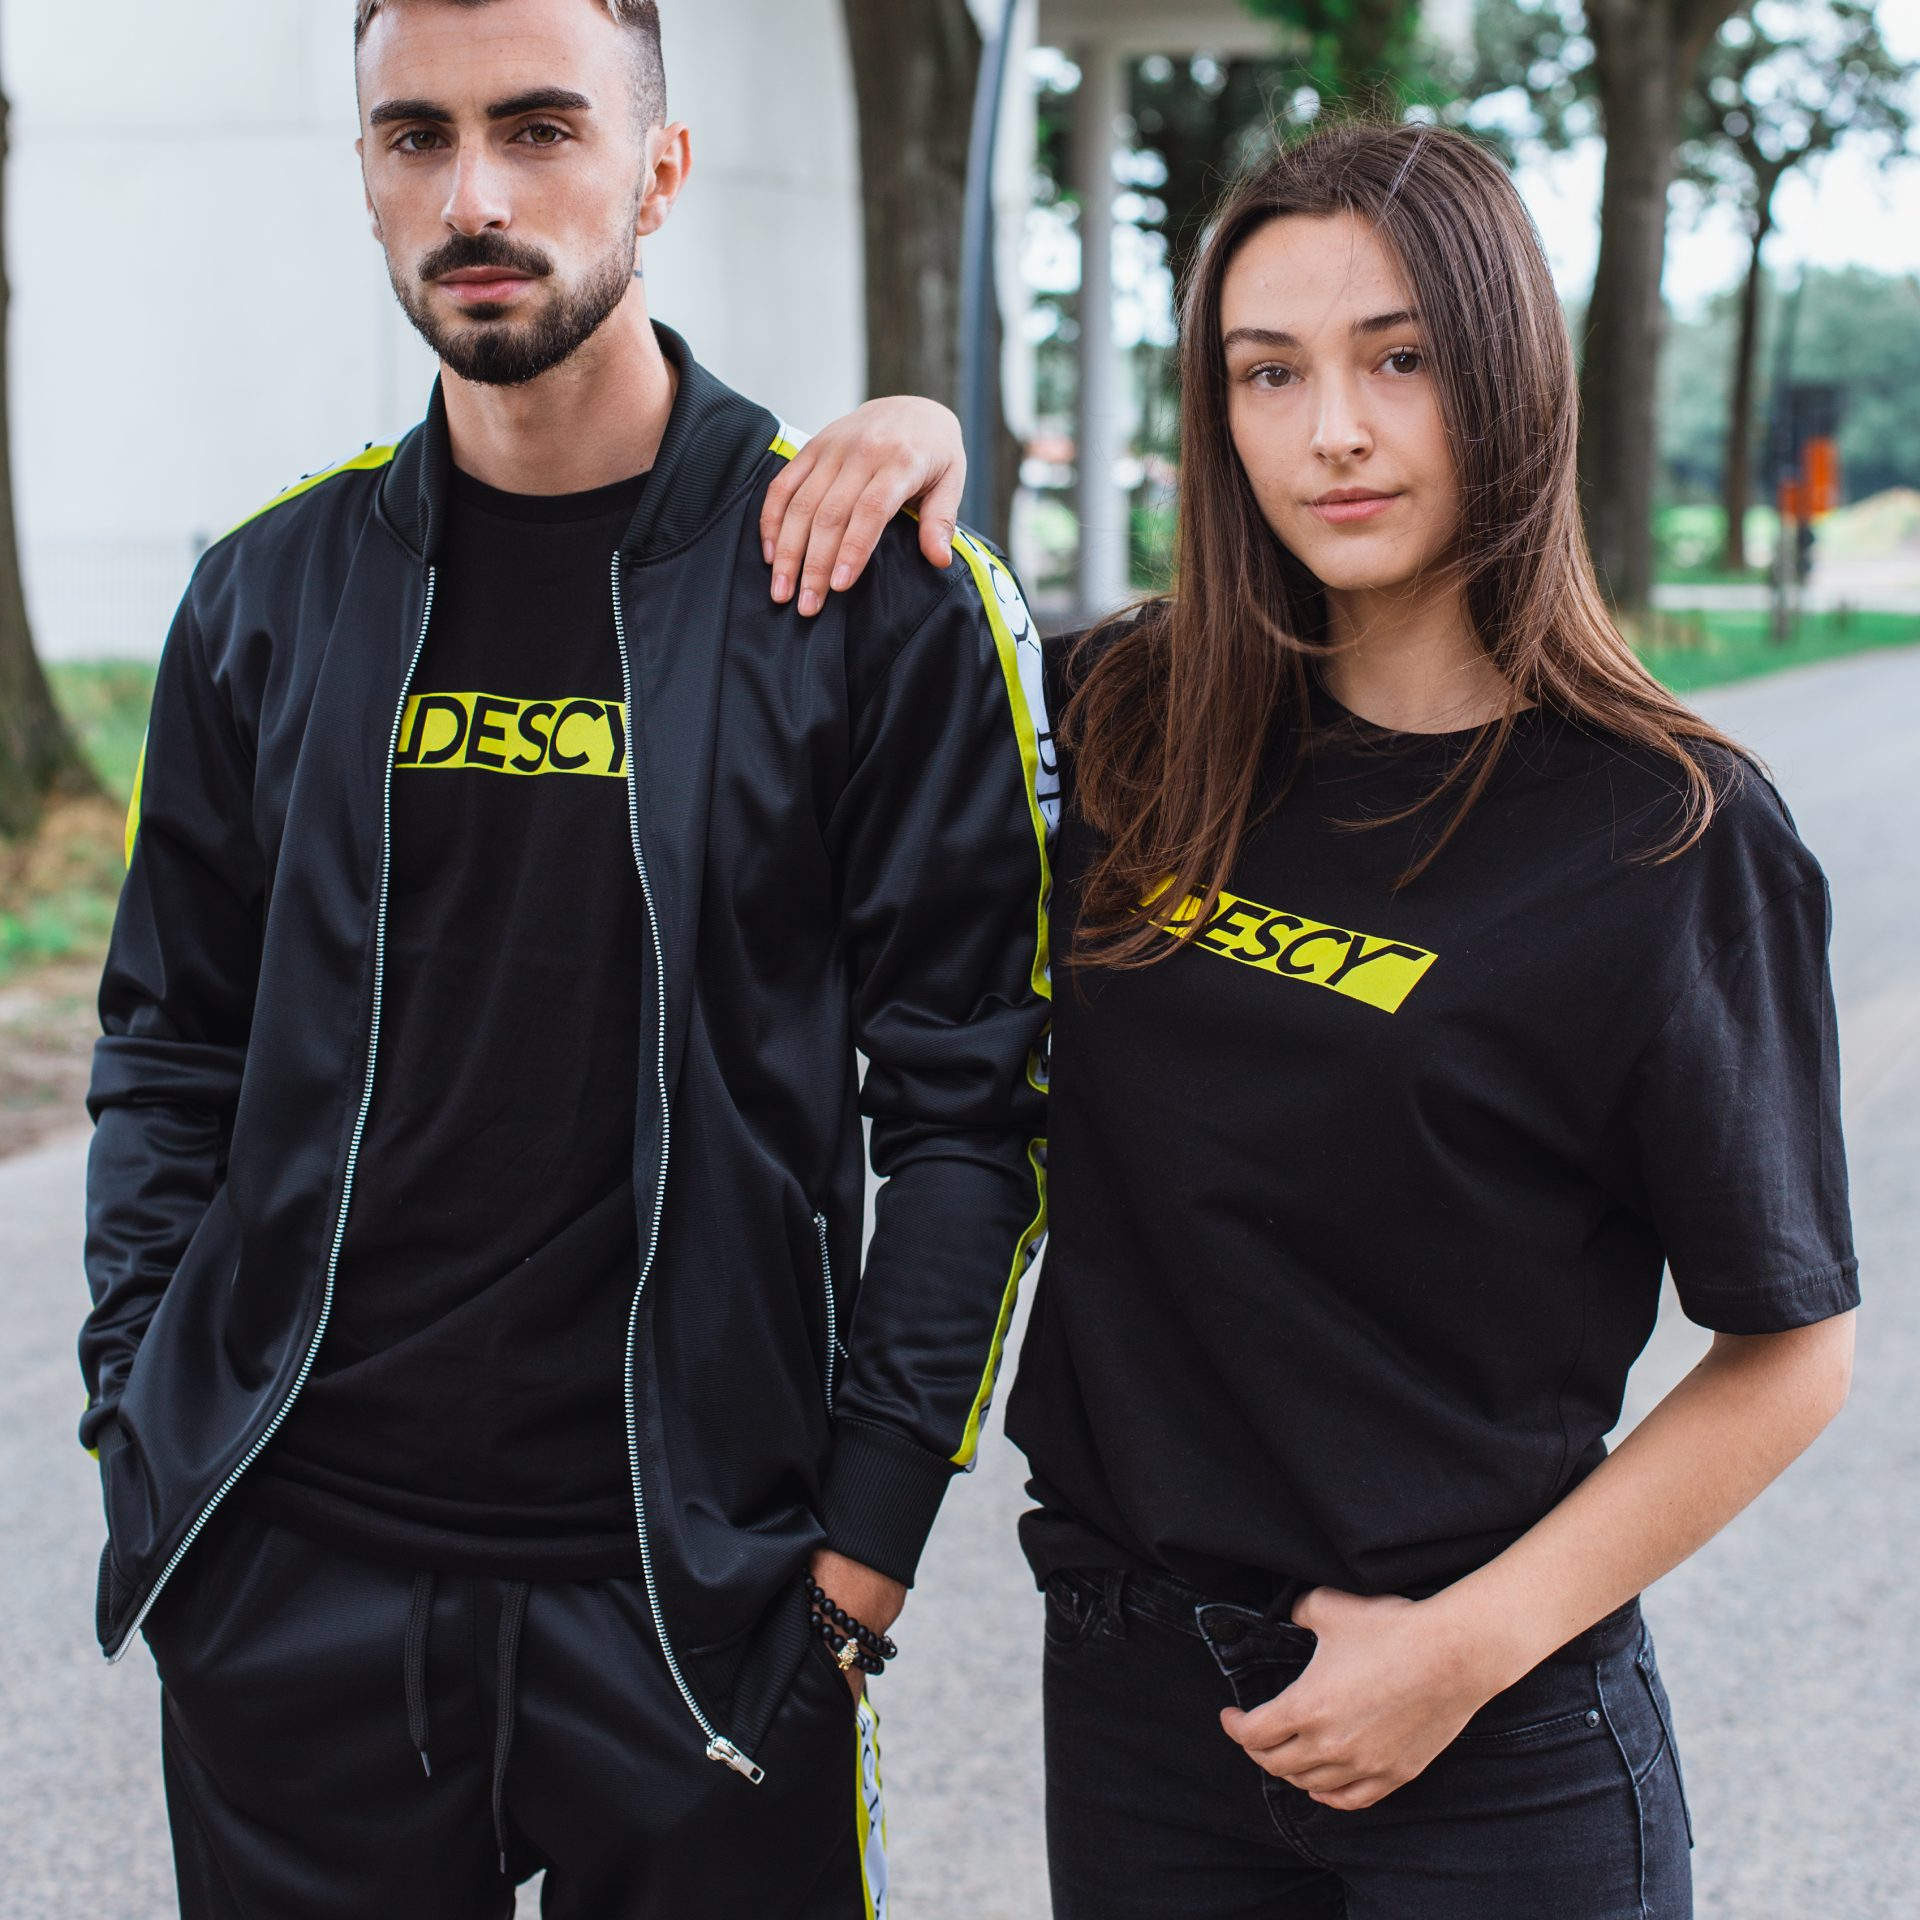 DESCY Yellow Box Logo Black T-shirt Unisex